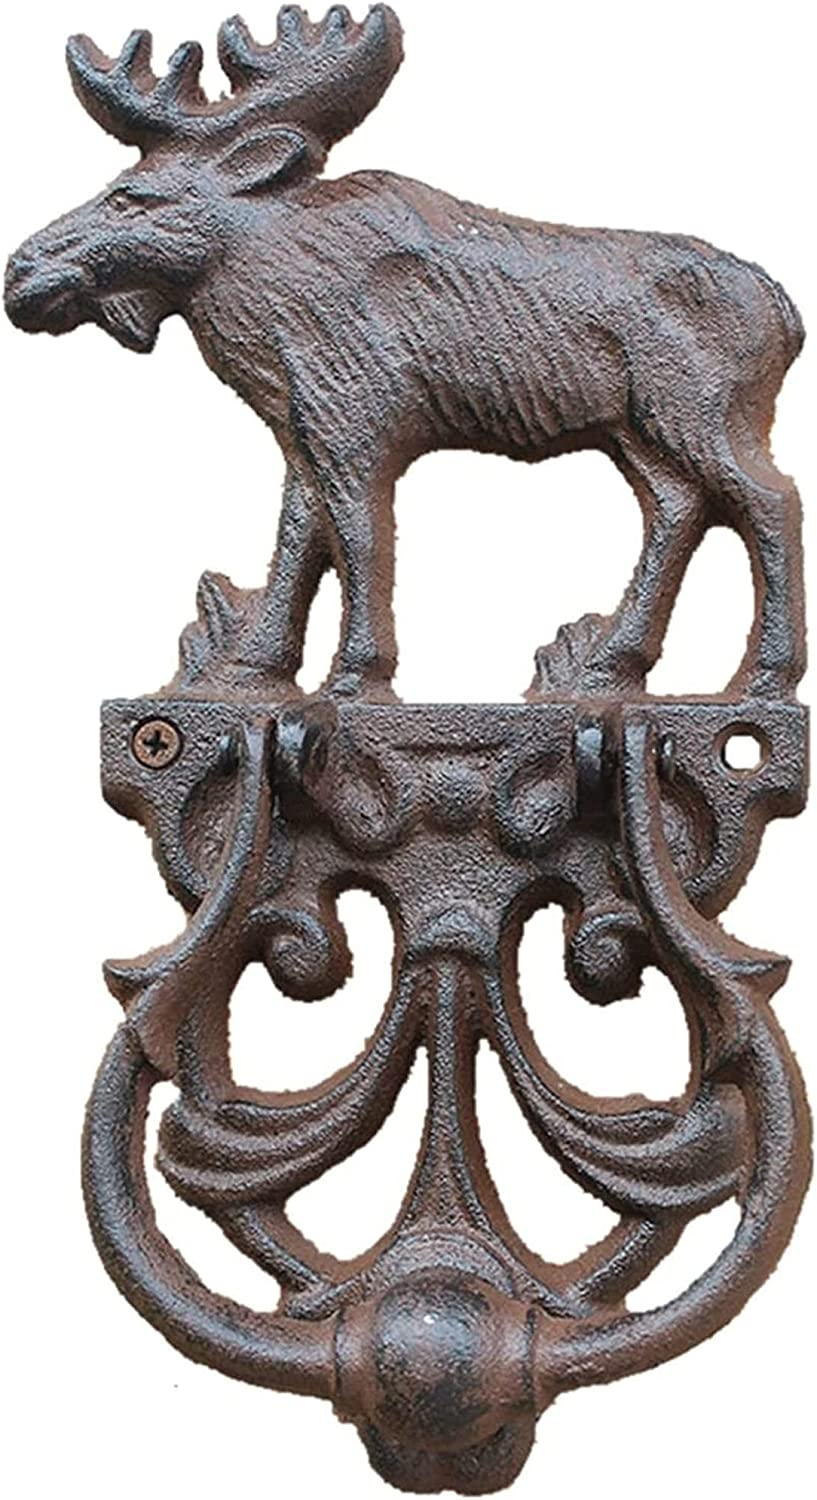 XJZM Outdoor Garden Fence Gate Knockers Townhomes Cast Iron Pull Ring, Deluxe Wall Decor Antique Elk Door Knocker, Vintage Handle with an Retro Bronze Finish Artisan Made Home Decor Acce (Color : 1)